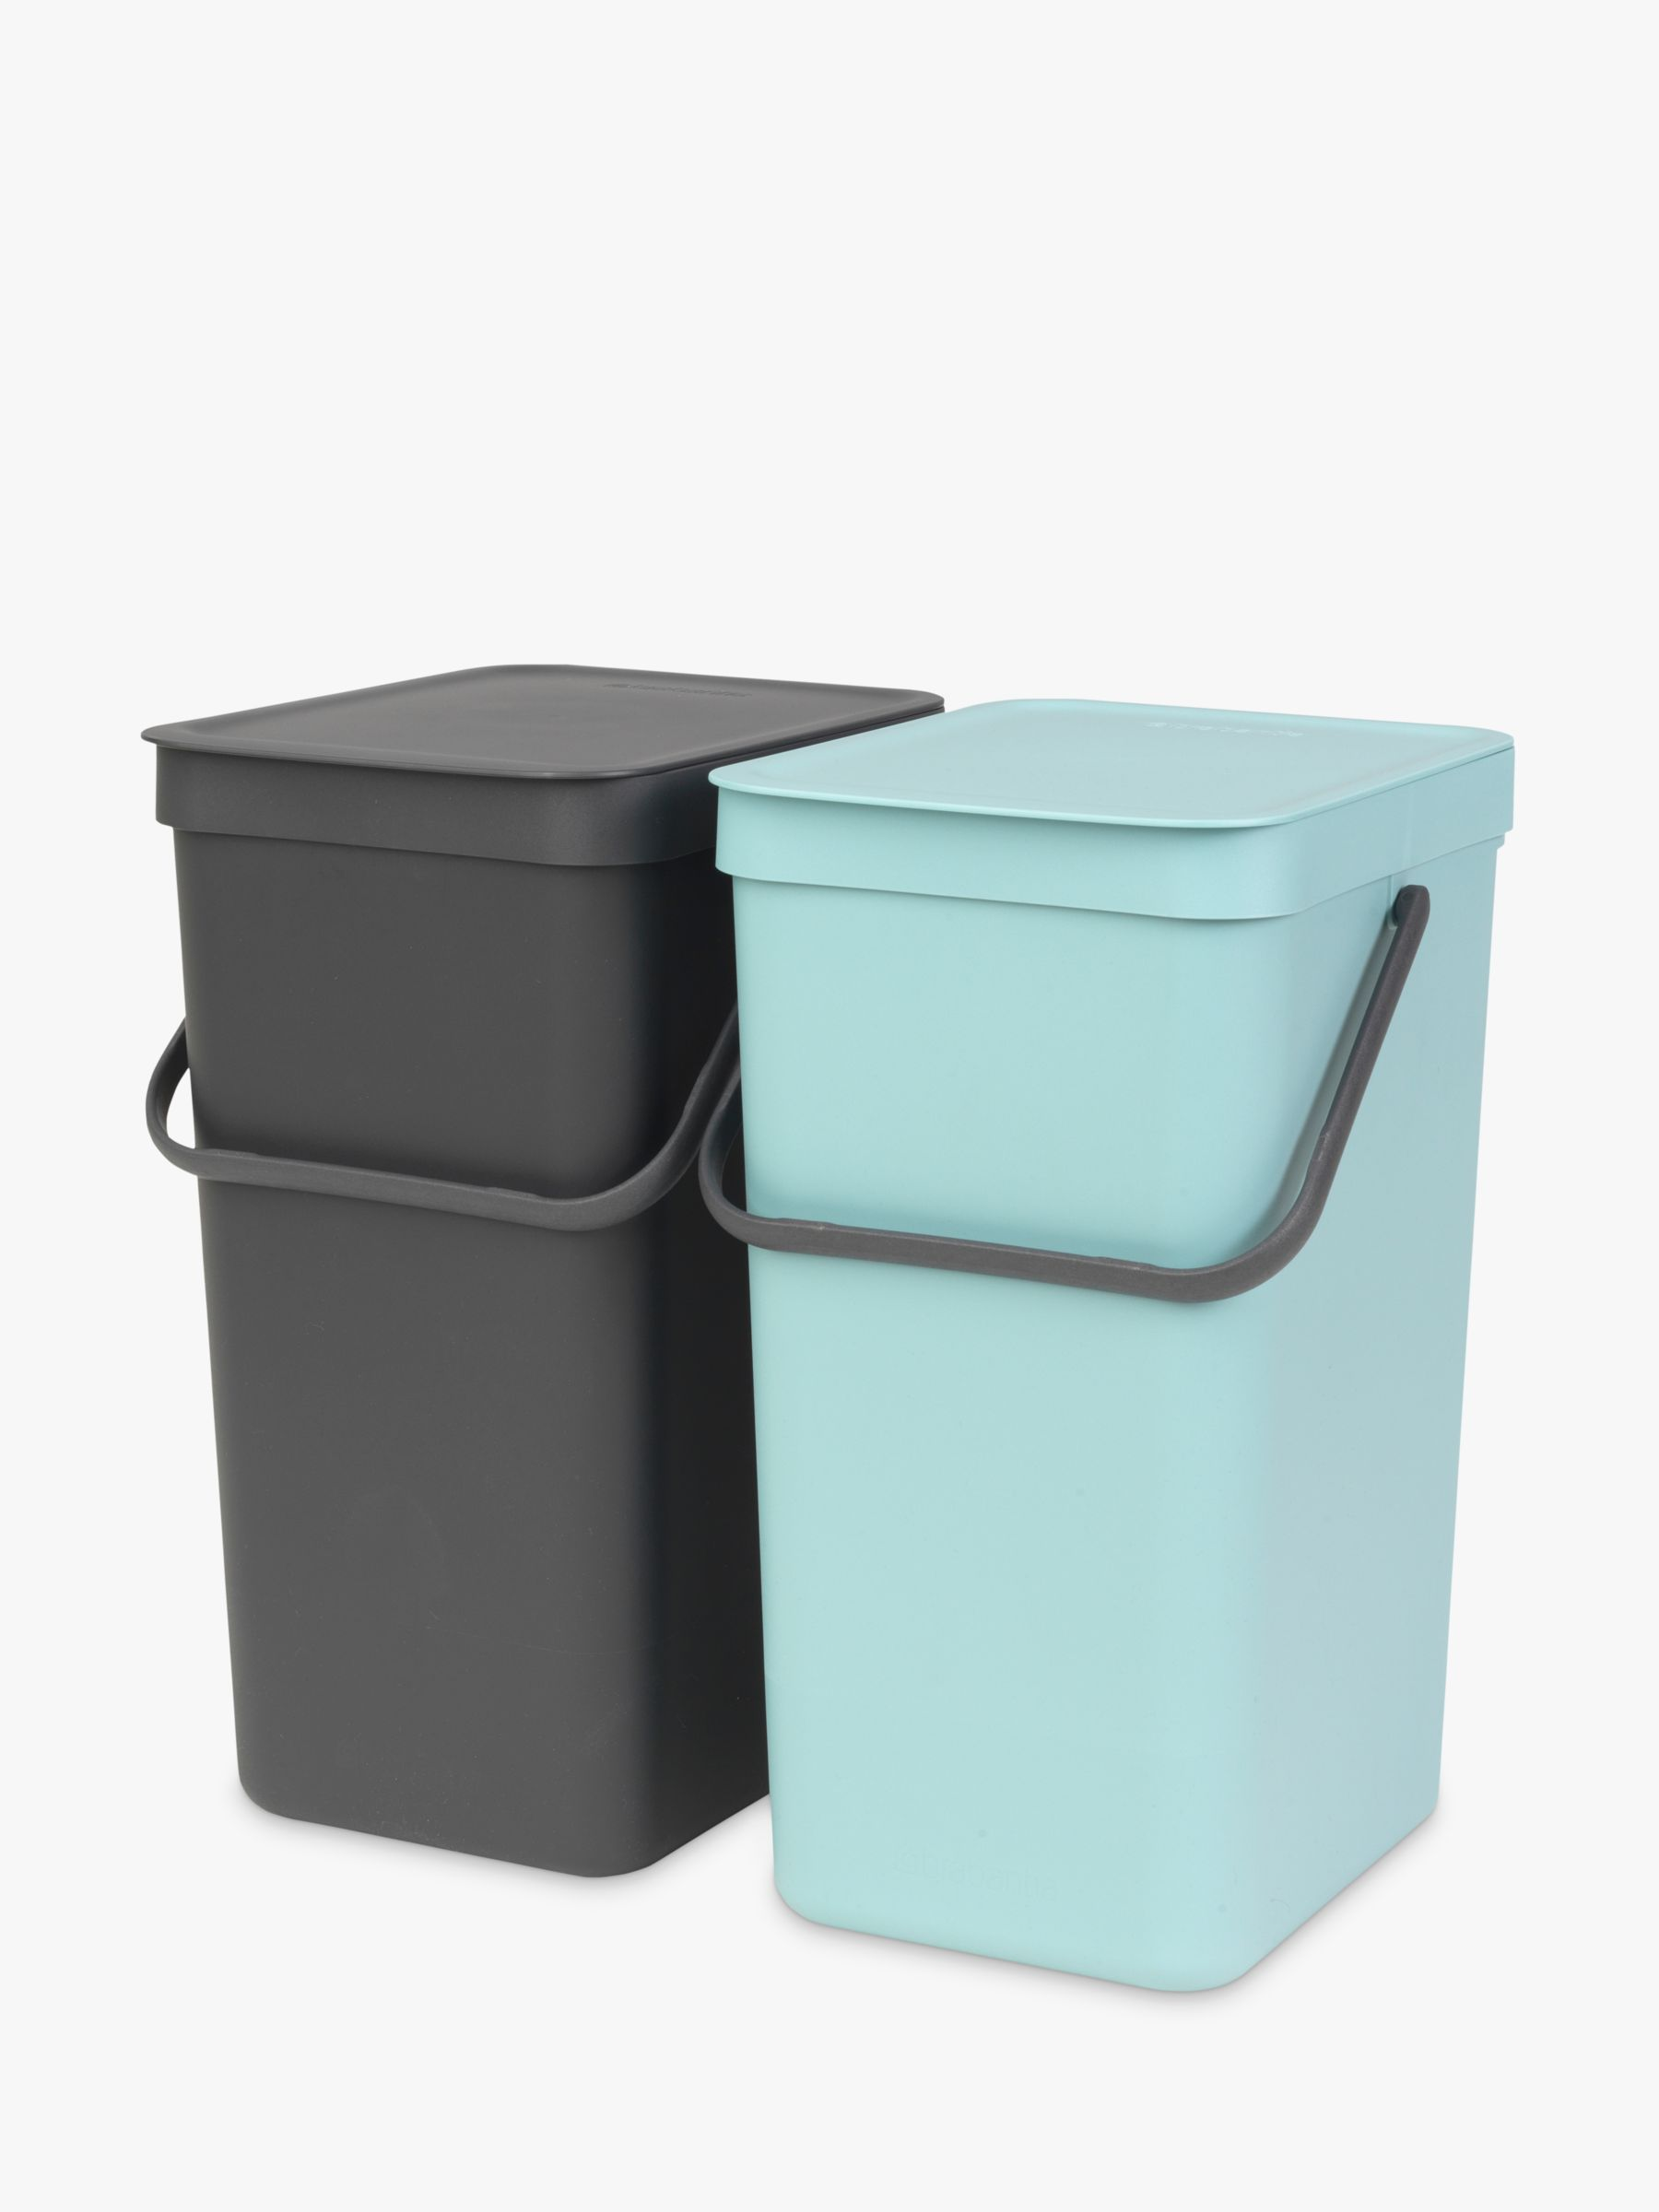 Brabantia Brabantia Sort & Go Built-In Bin, Grey / Mint, 2 x 16L